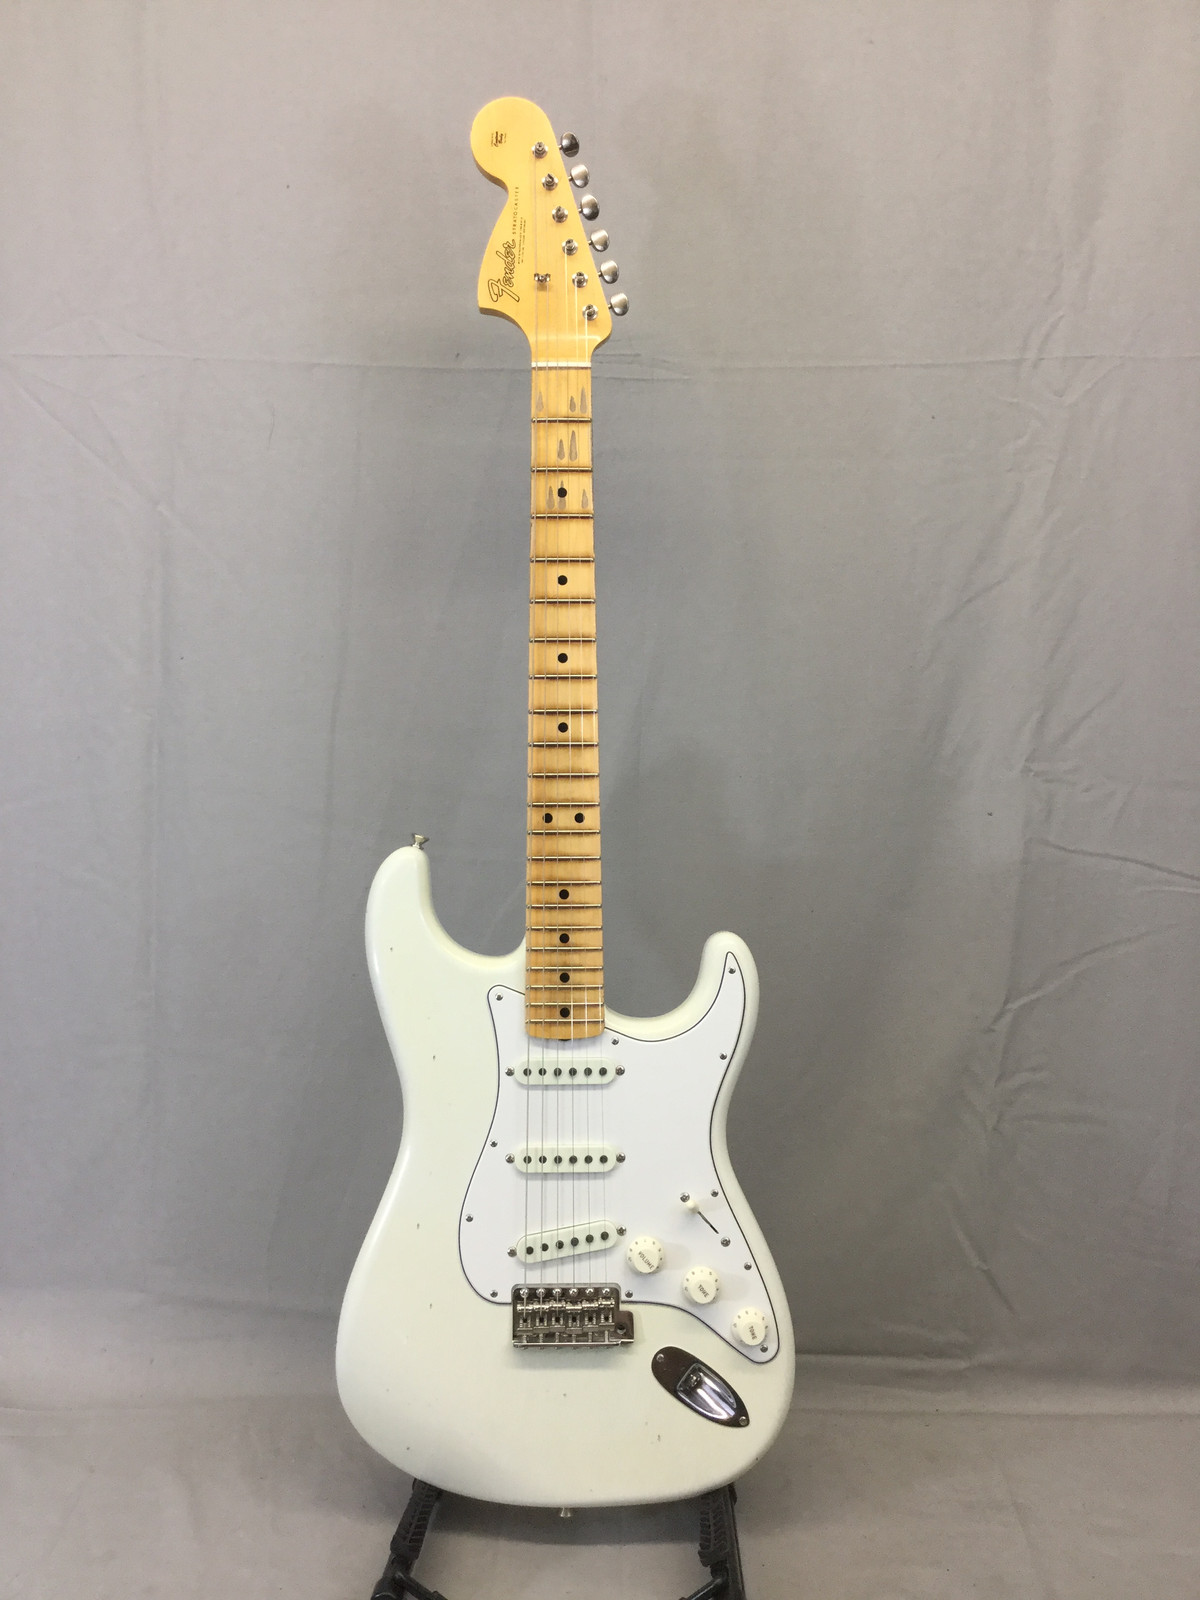 Firehouse Guitars Grandville Instrument Sales Lessons Guitar Kill Switch Wiring As Well Fender Custom Shop Jimi Hendrix Voodoo Child Journeyman Stratocaster 4850